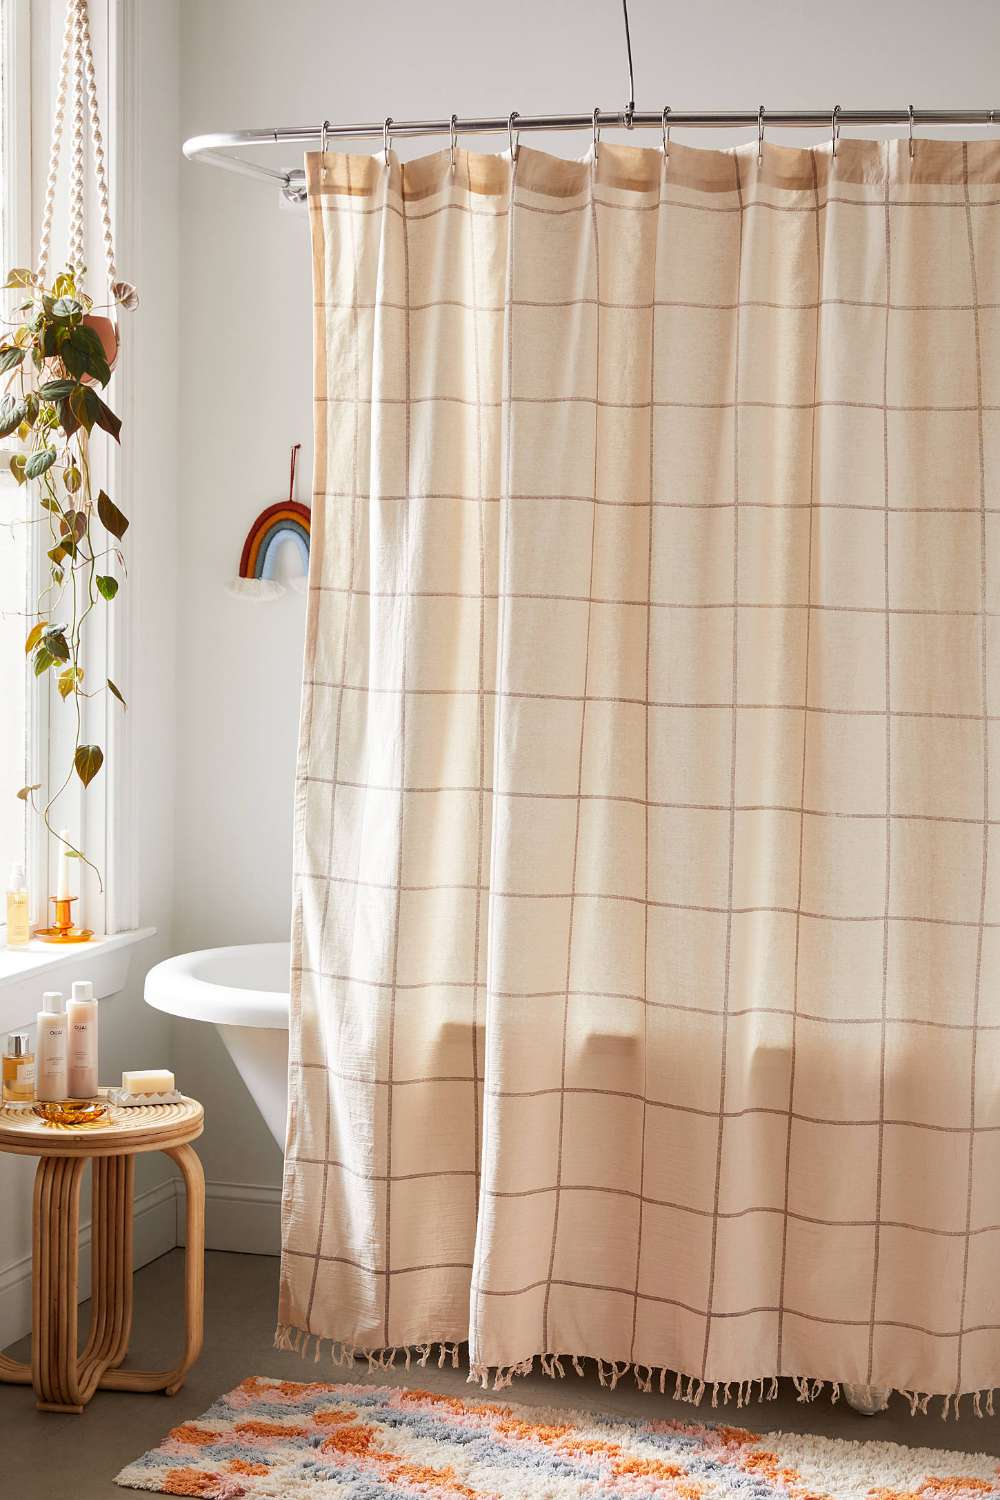 Grid Shower Curtain Urban Outfitters Canada In 2020 Grid